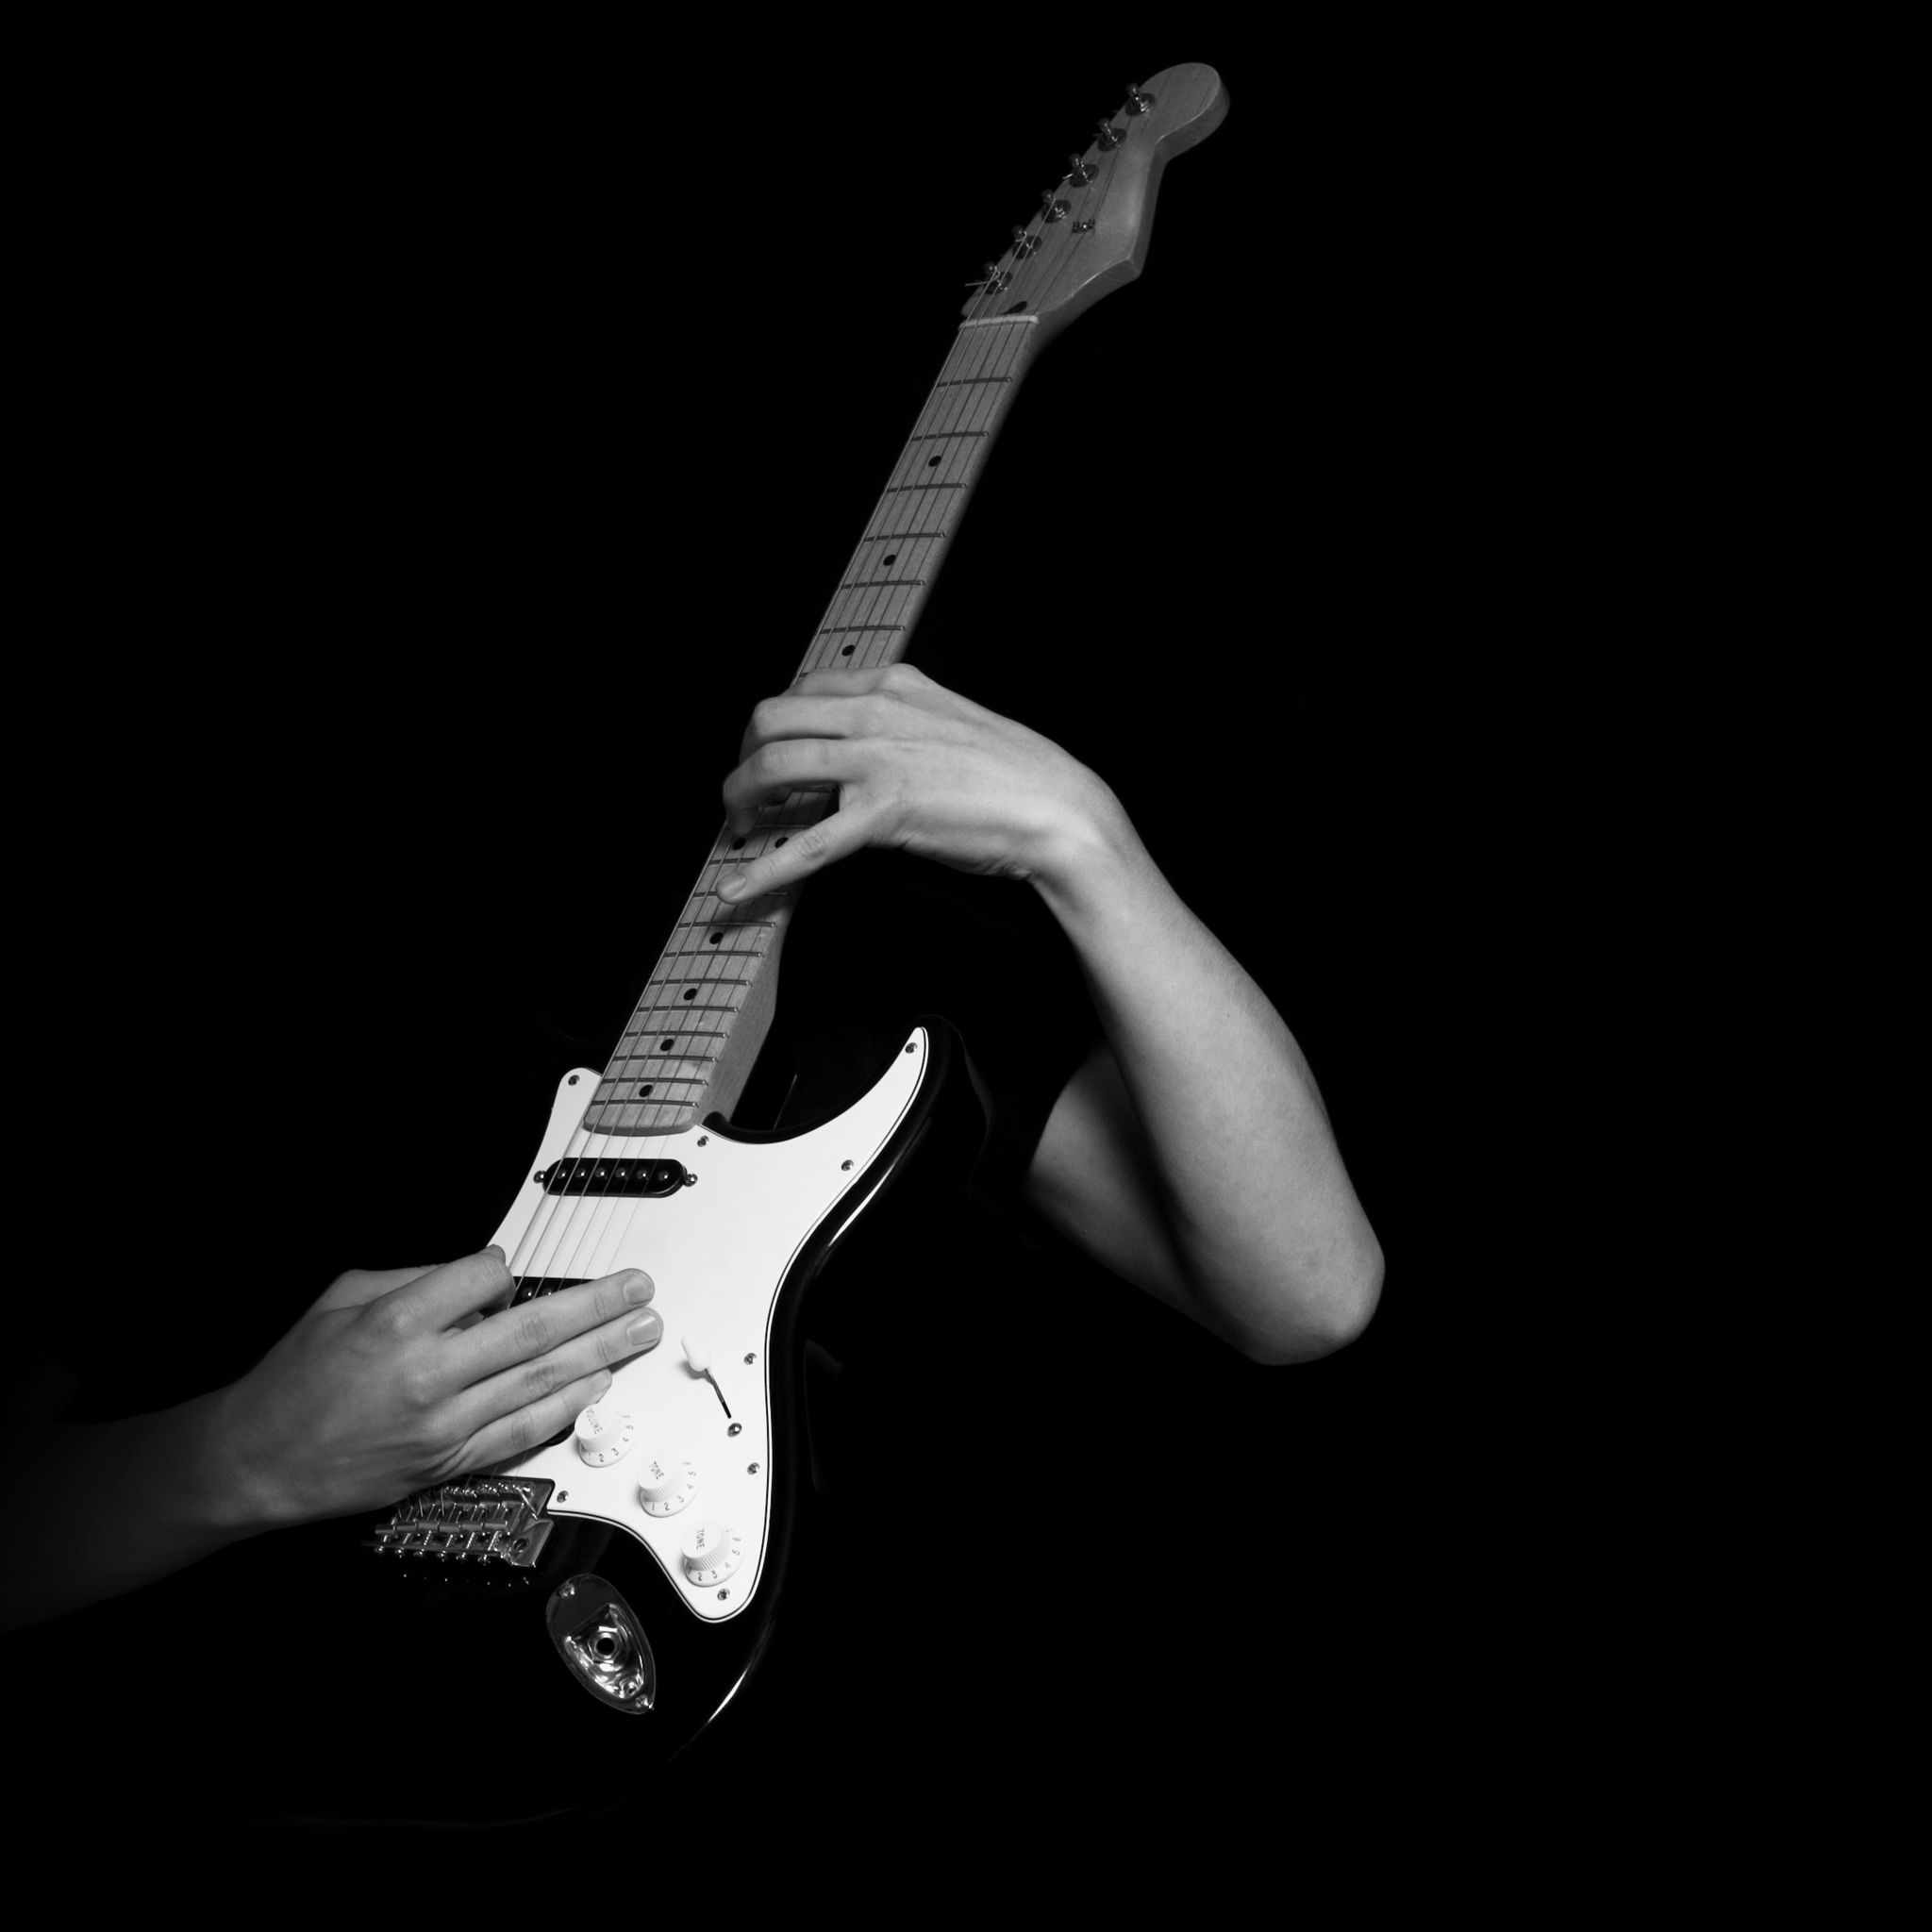 Electric Guitar 3Wallpapers iPad Electric Guitar   iPad